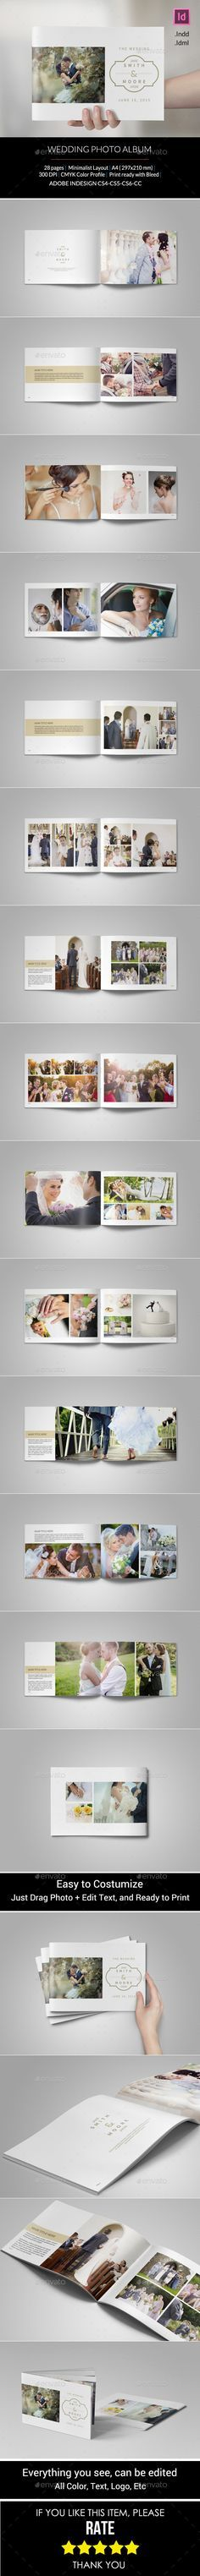 Simple Wedding Photo Album — InDesign INDD #photo album #wedding book • Available here → https://graphicriver.net/item/simple-wedding-photo-album/11070772?ref=pxcr